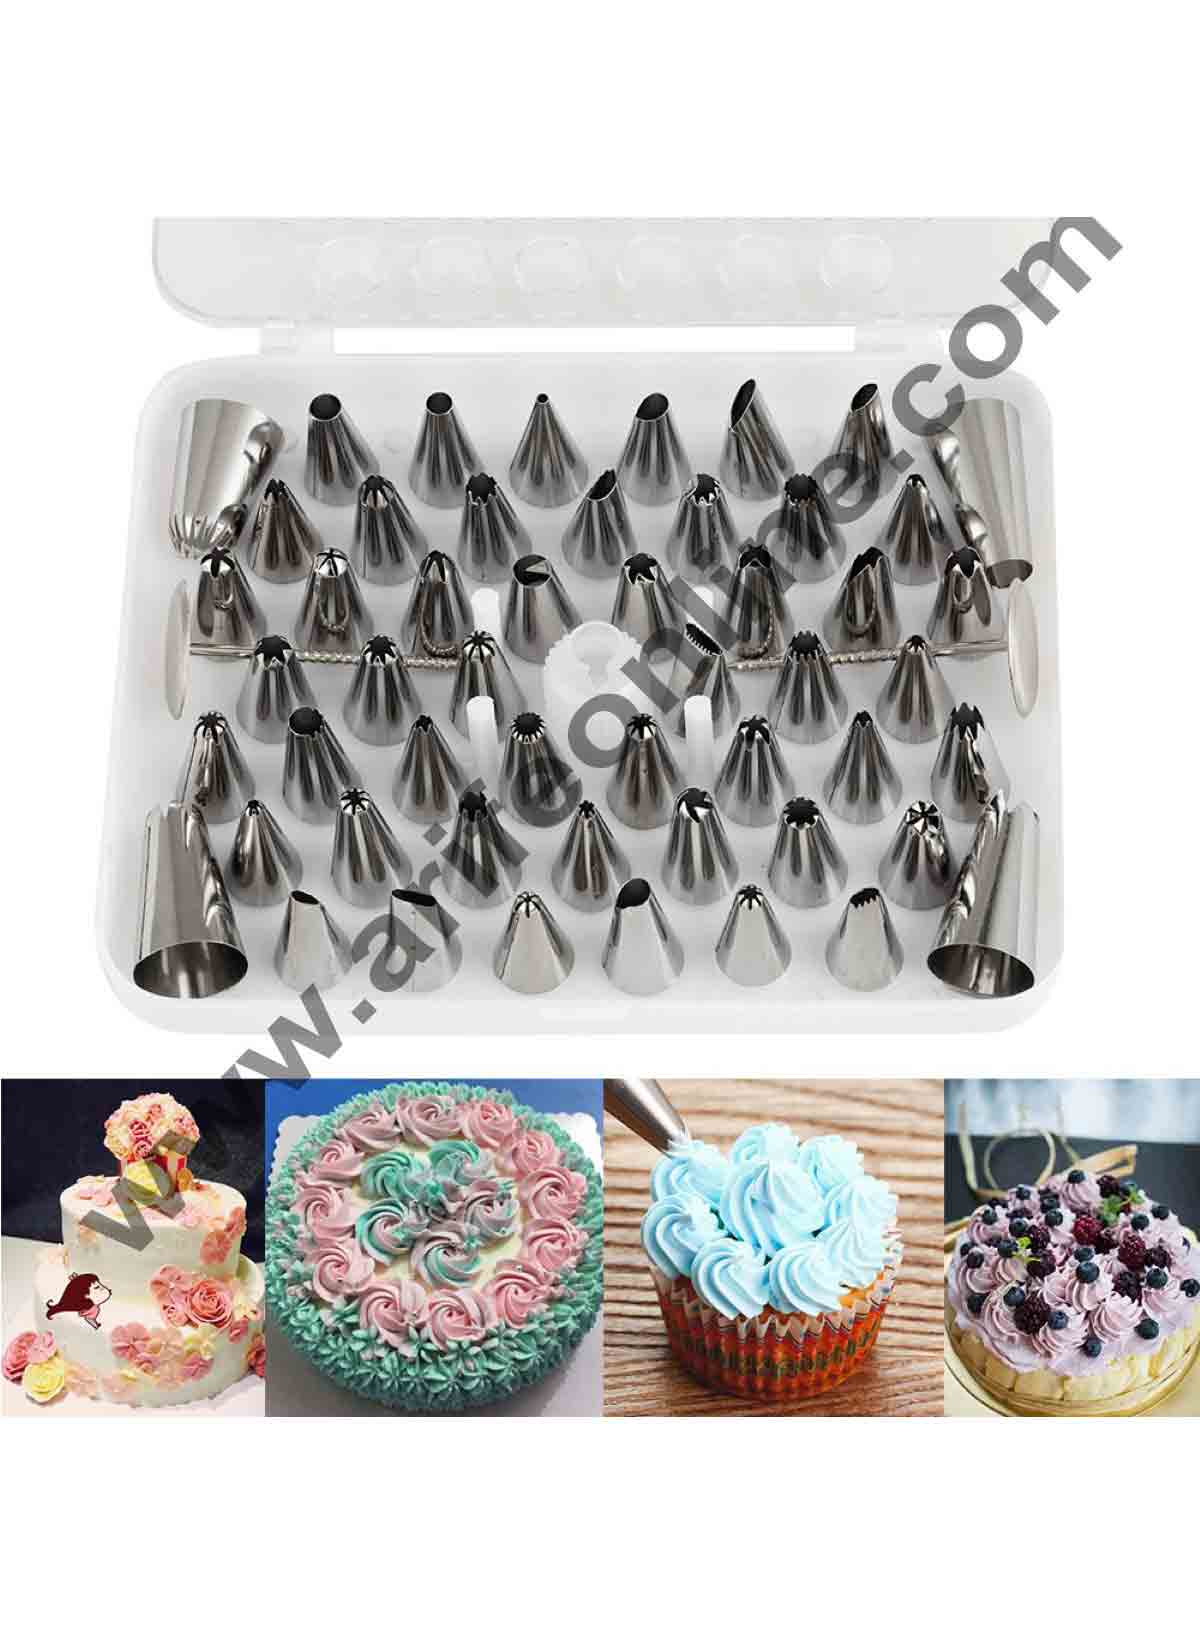 Cake Decor 52pcs/Set Box Piping Nozzles Pastry Tips Cupcake Cake Decorating Stainless Steel Nozzles